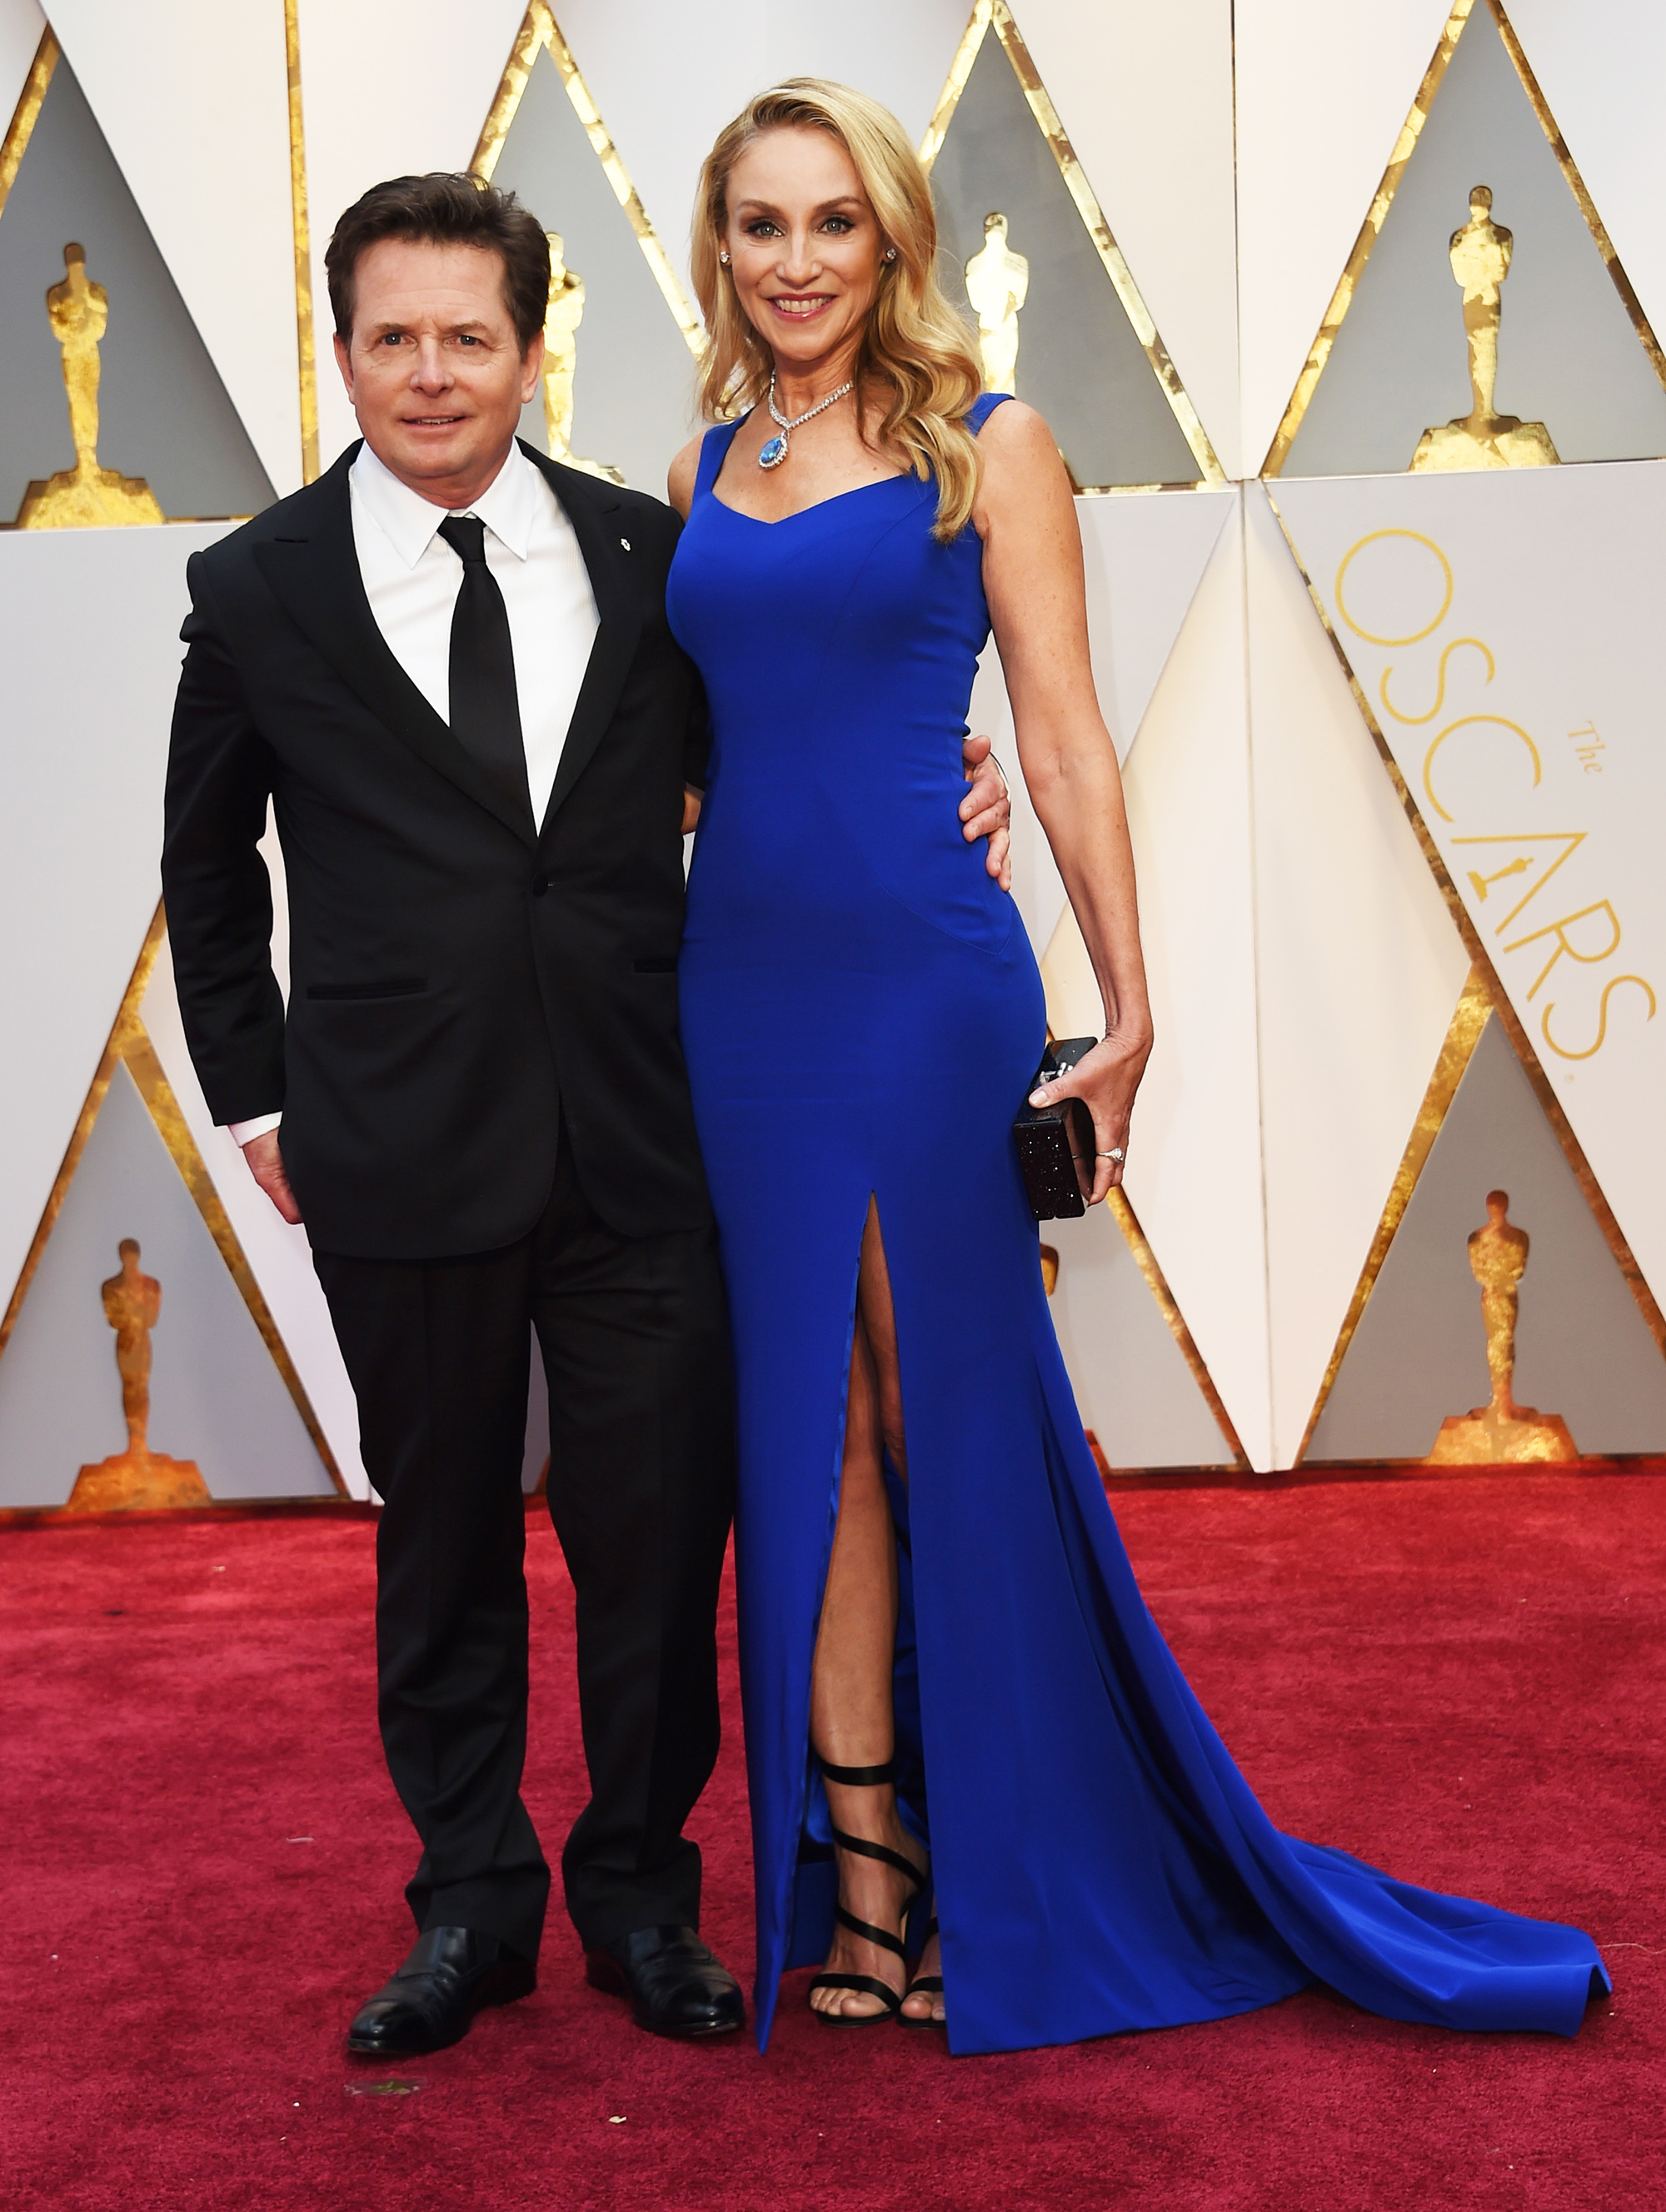 Michael J. Fox and Tracy Pollan on the red carpet for the 89th Oscars, on Feb. 26, 2017 in Hollywood, Calif.